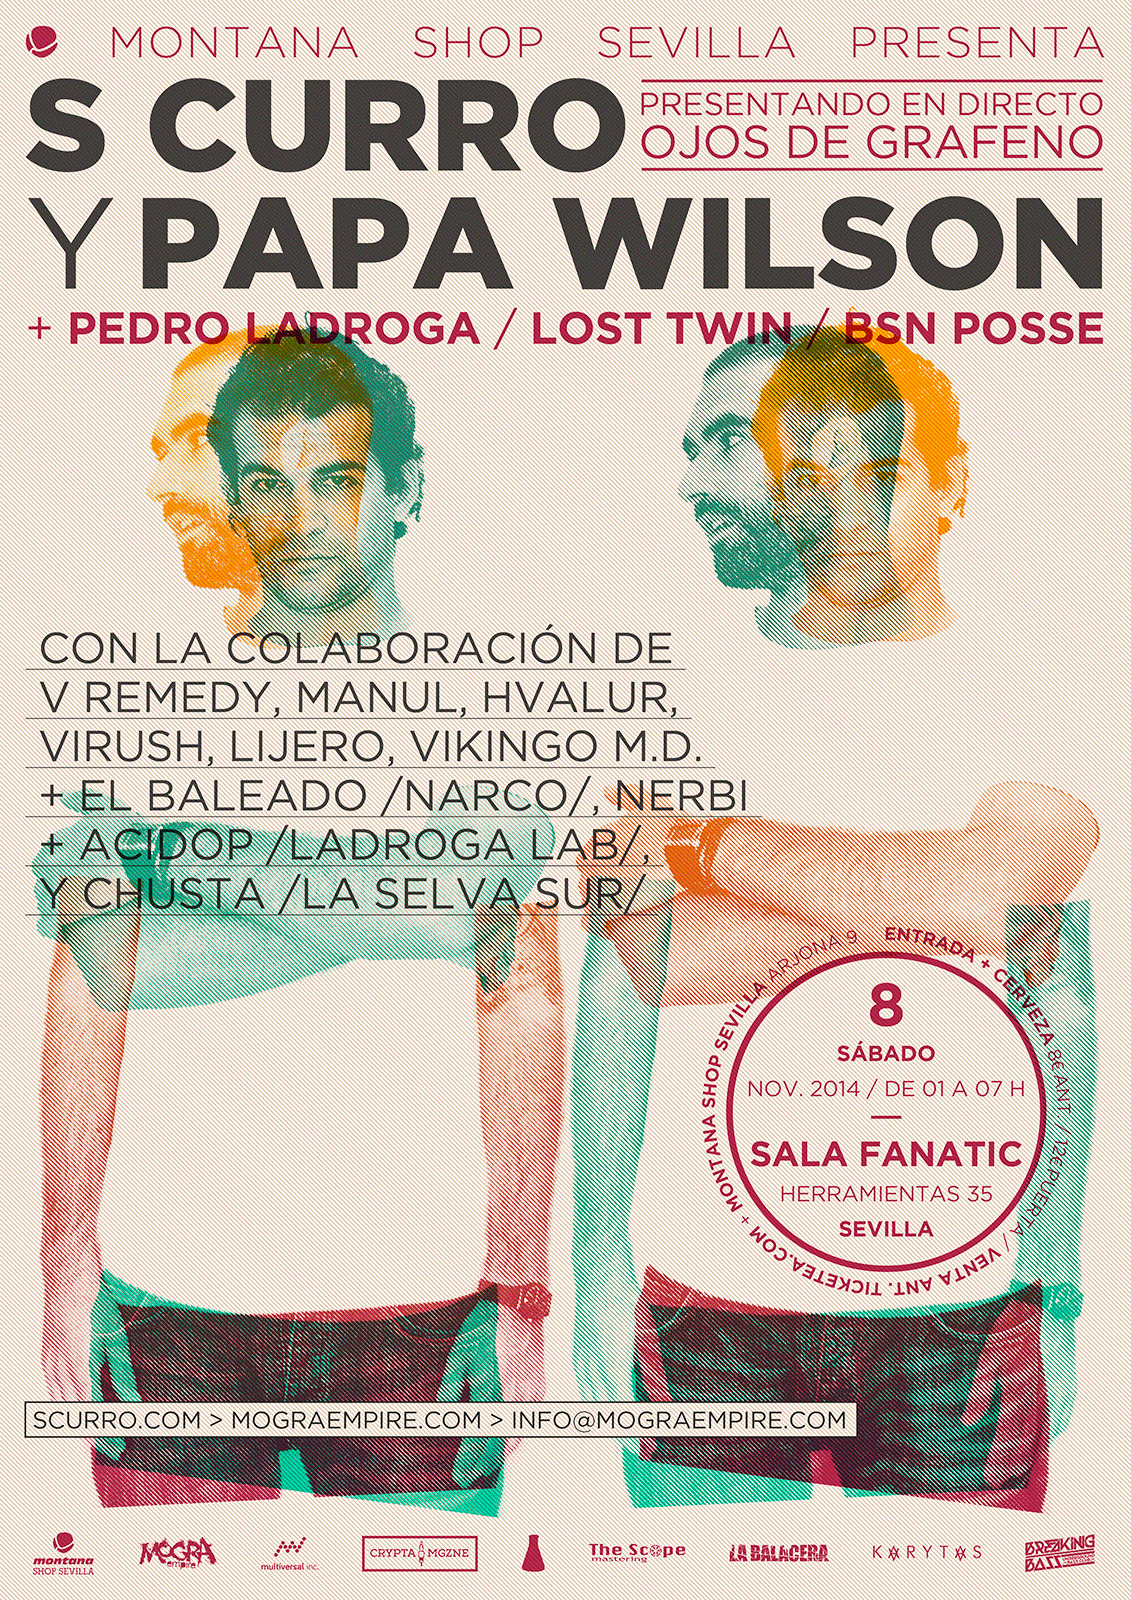 https://www.ticketea.com/s-curro-y-papa-wilson-en-sevilla/